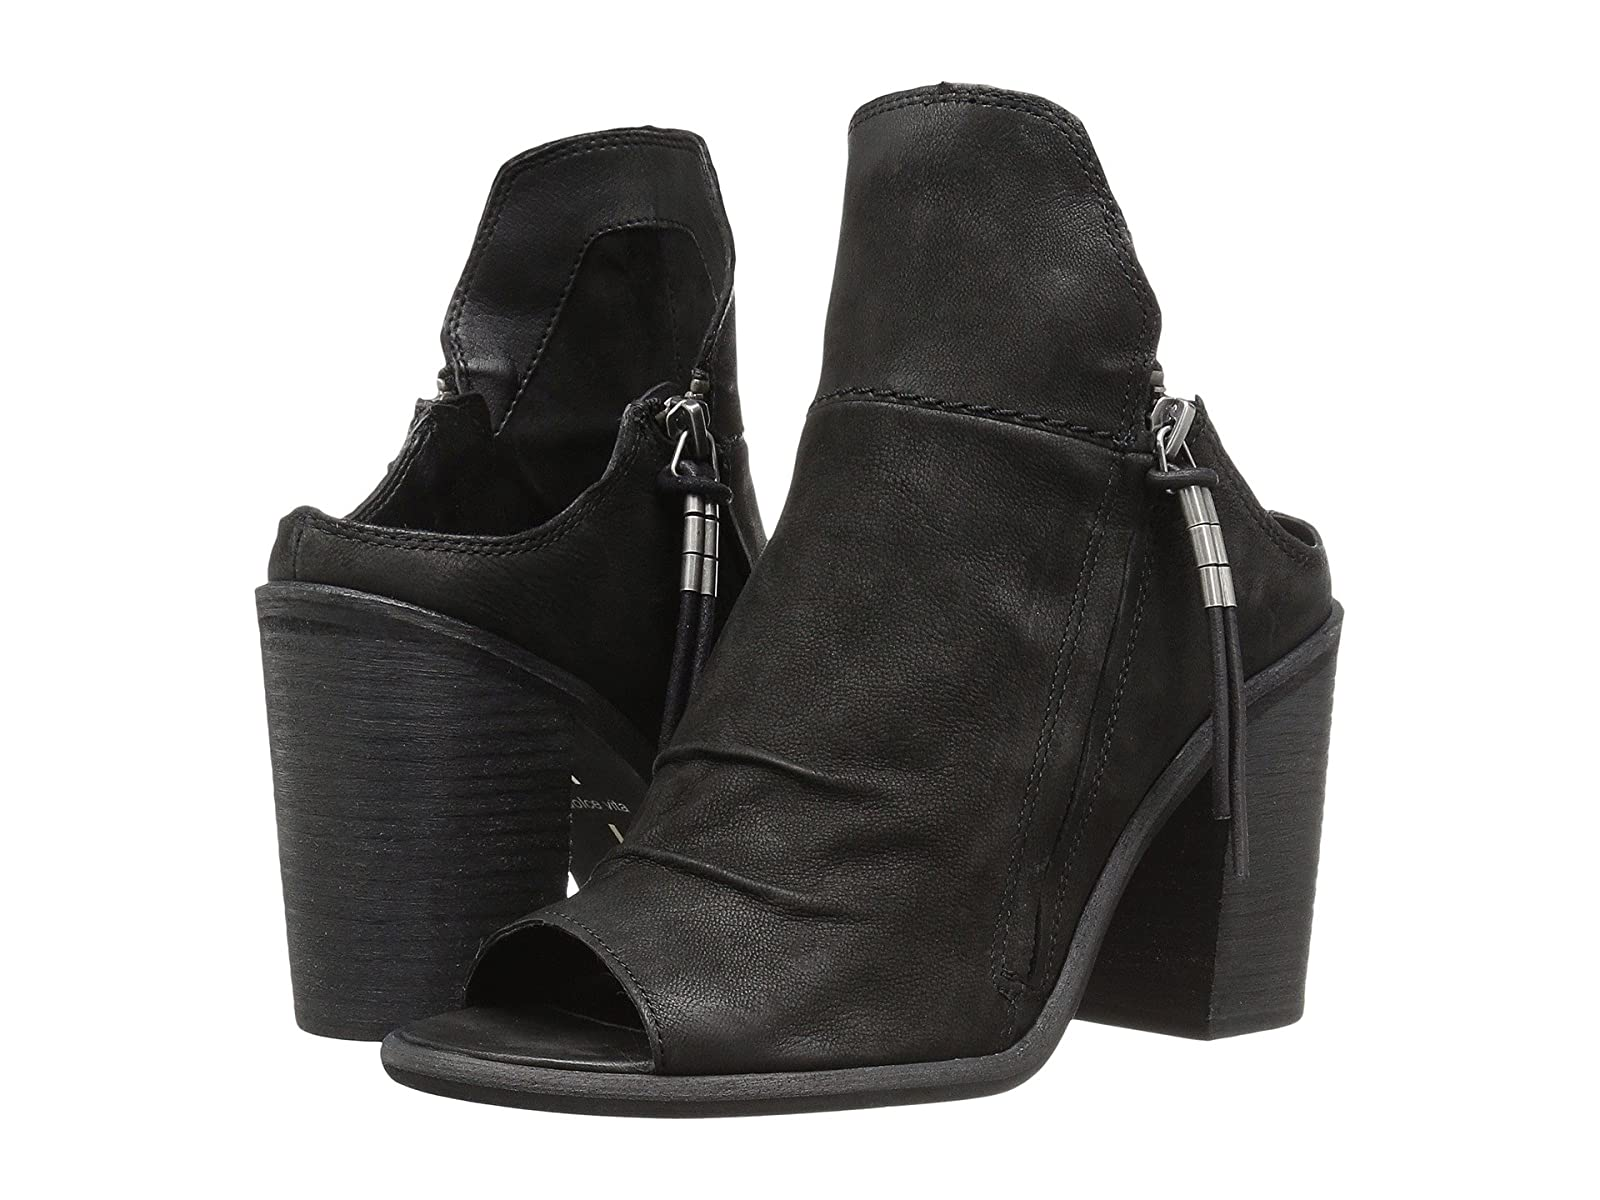 Dolce Vita LennoxCheap and distinctive eye-catching shoes